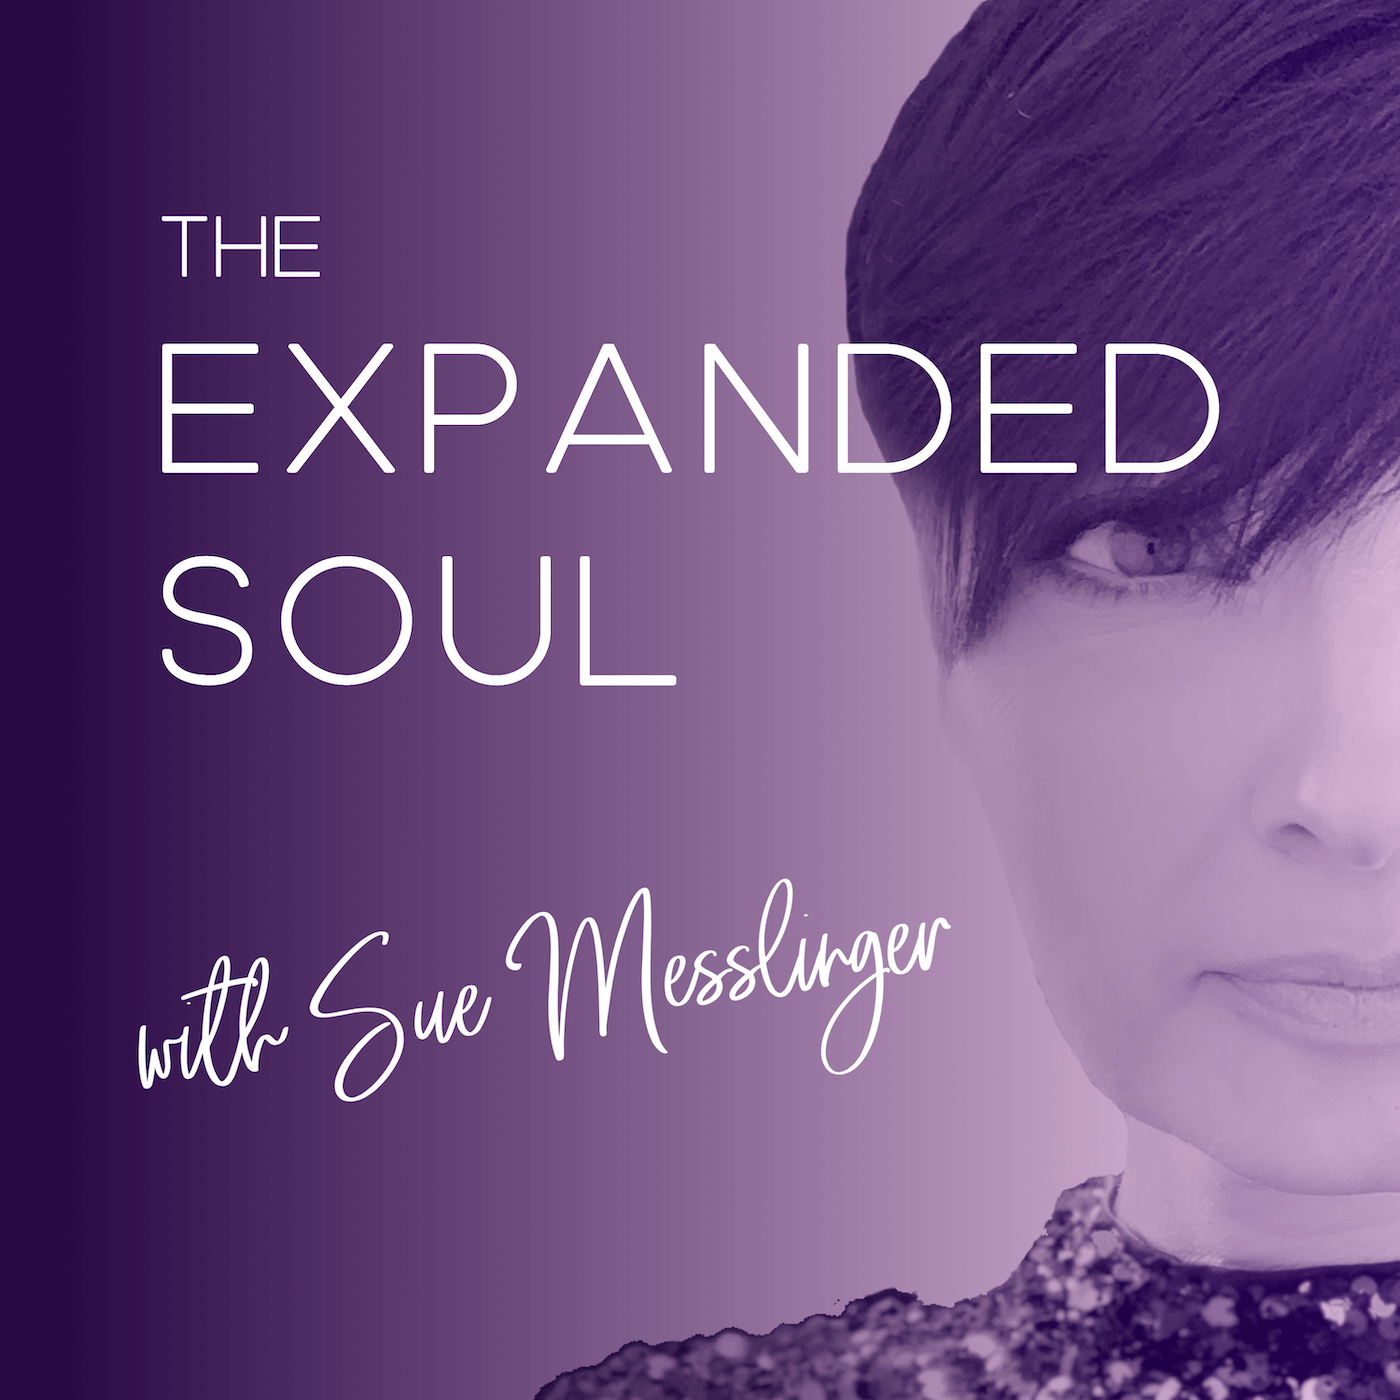 The Expanded Soul